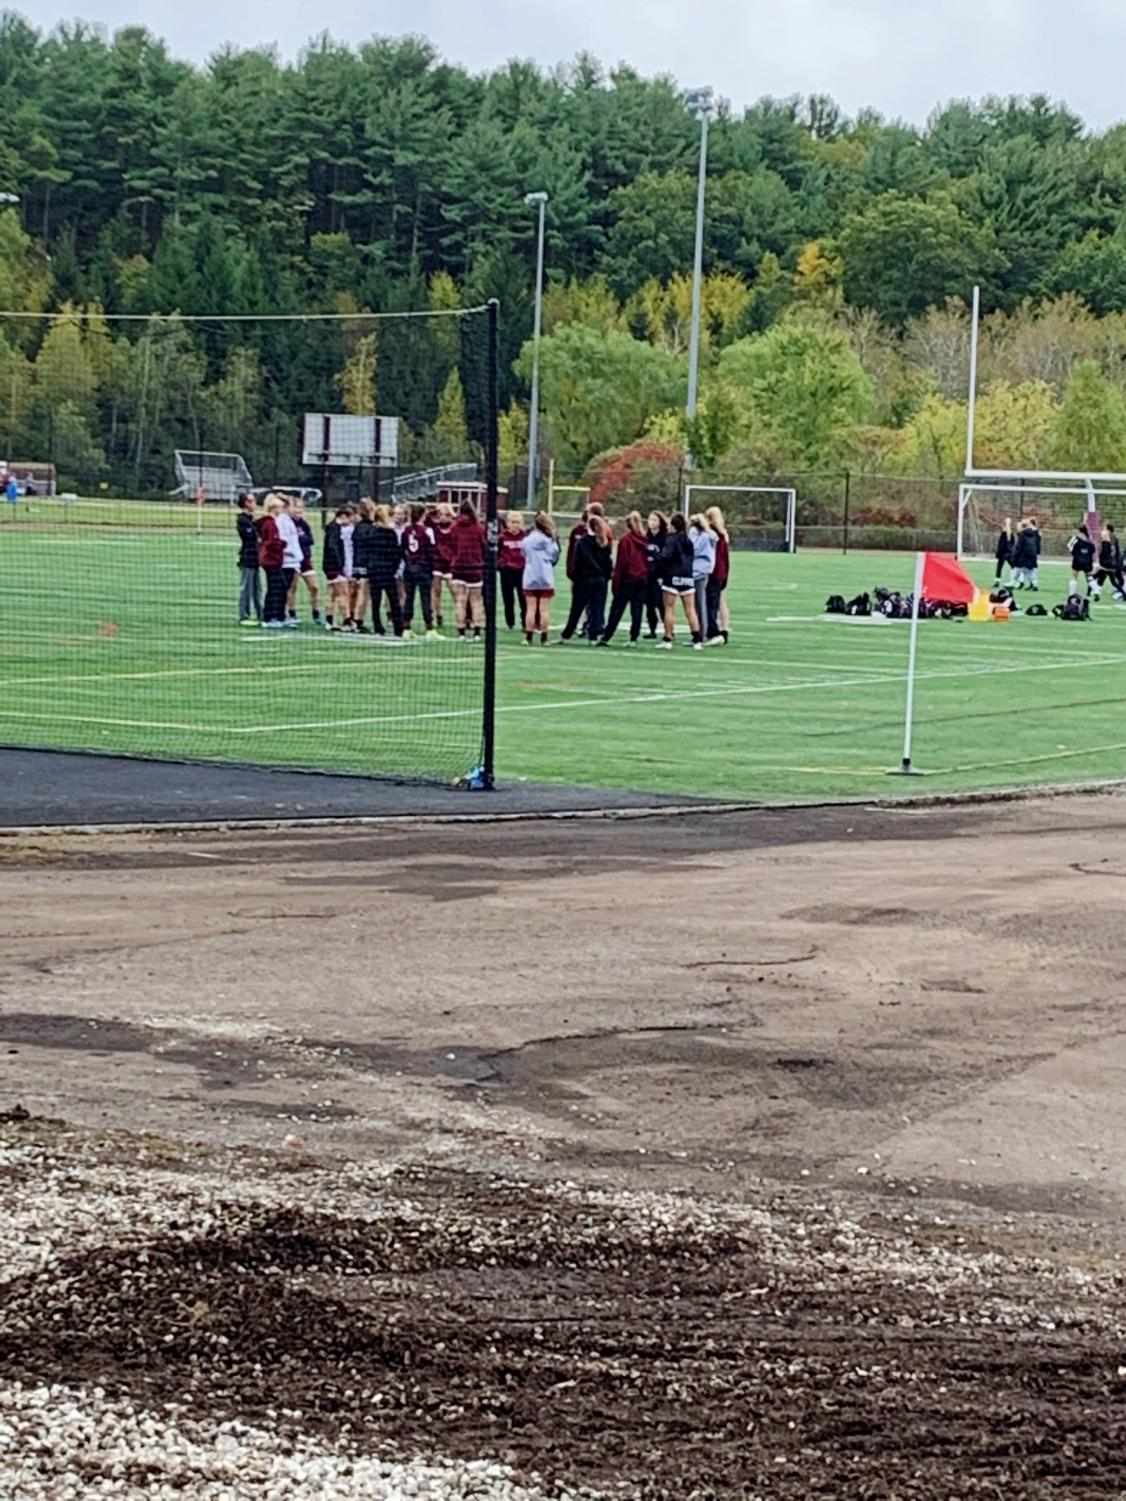 Portsmouth receiving a pep talk from coaches, Brint Shone and Hanna Strong, pre game